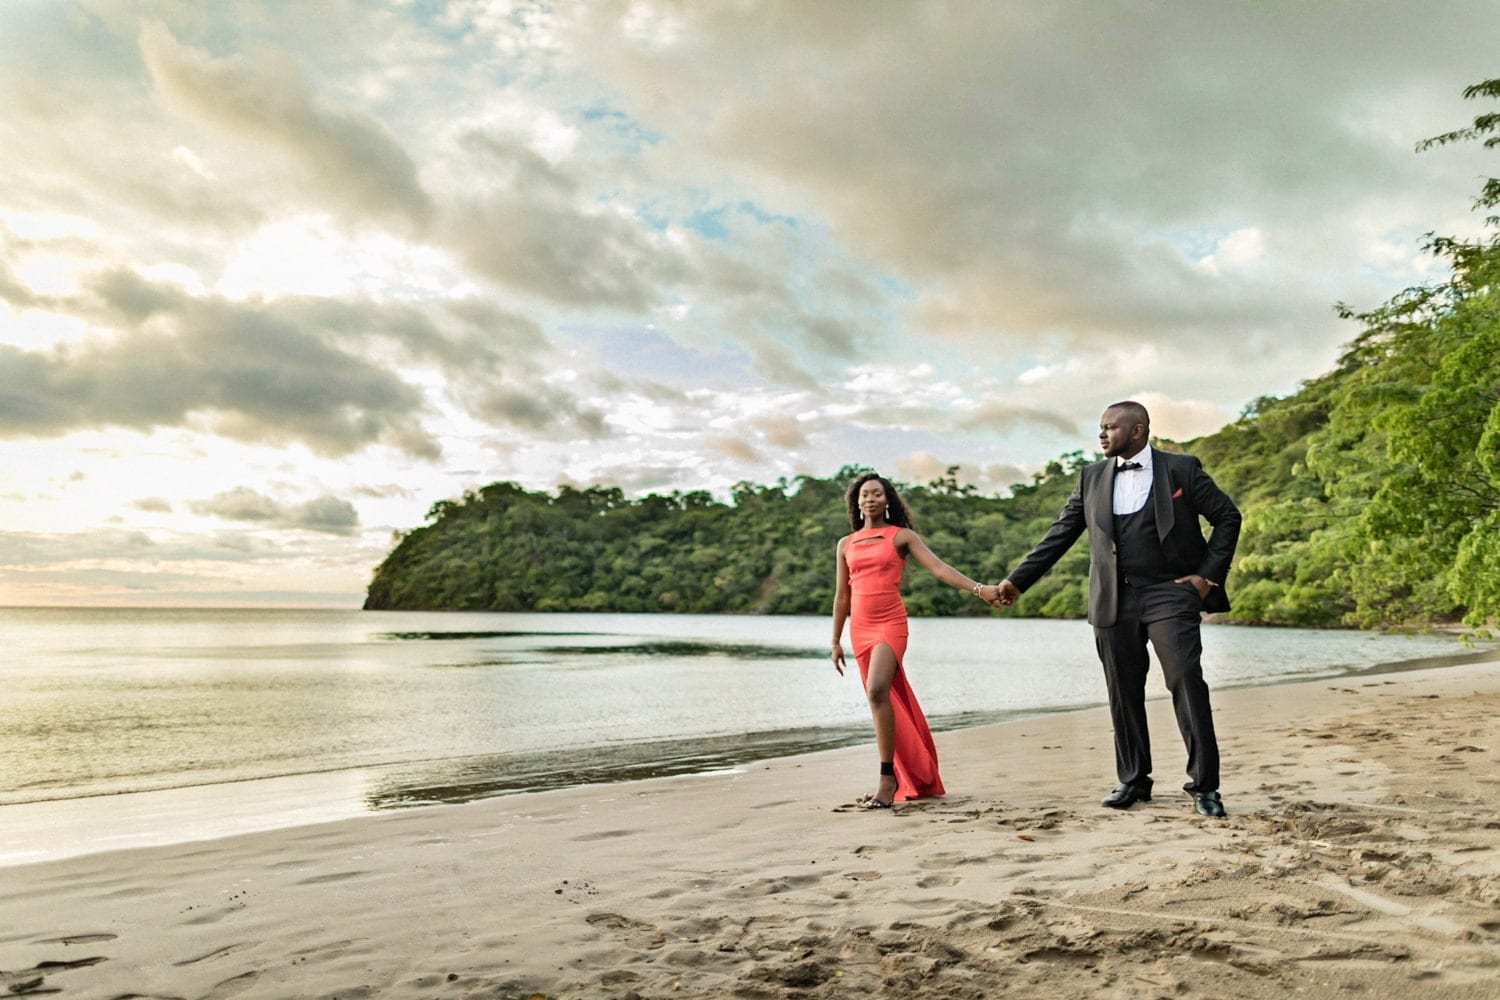 Just engaged couple on beach at sunset in Costa Rica.